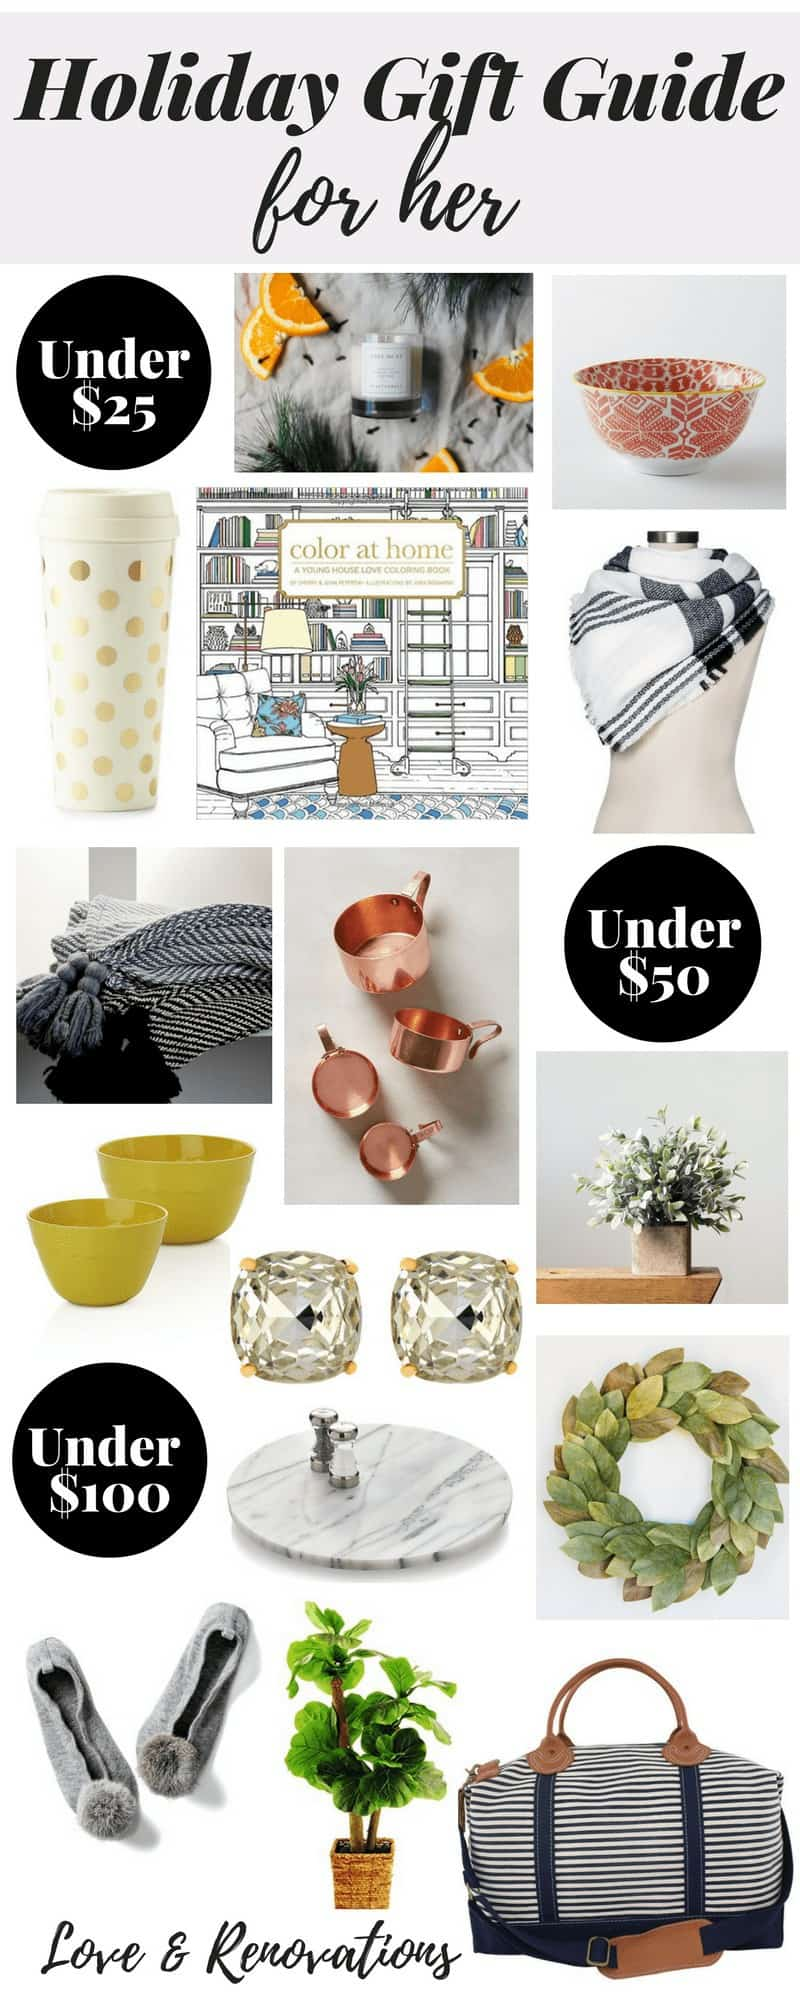 This is a great holiday gift guide for the women in your life. Tons of great ideas that are affordable, unique, and beautiful!